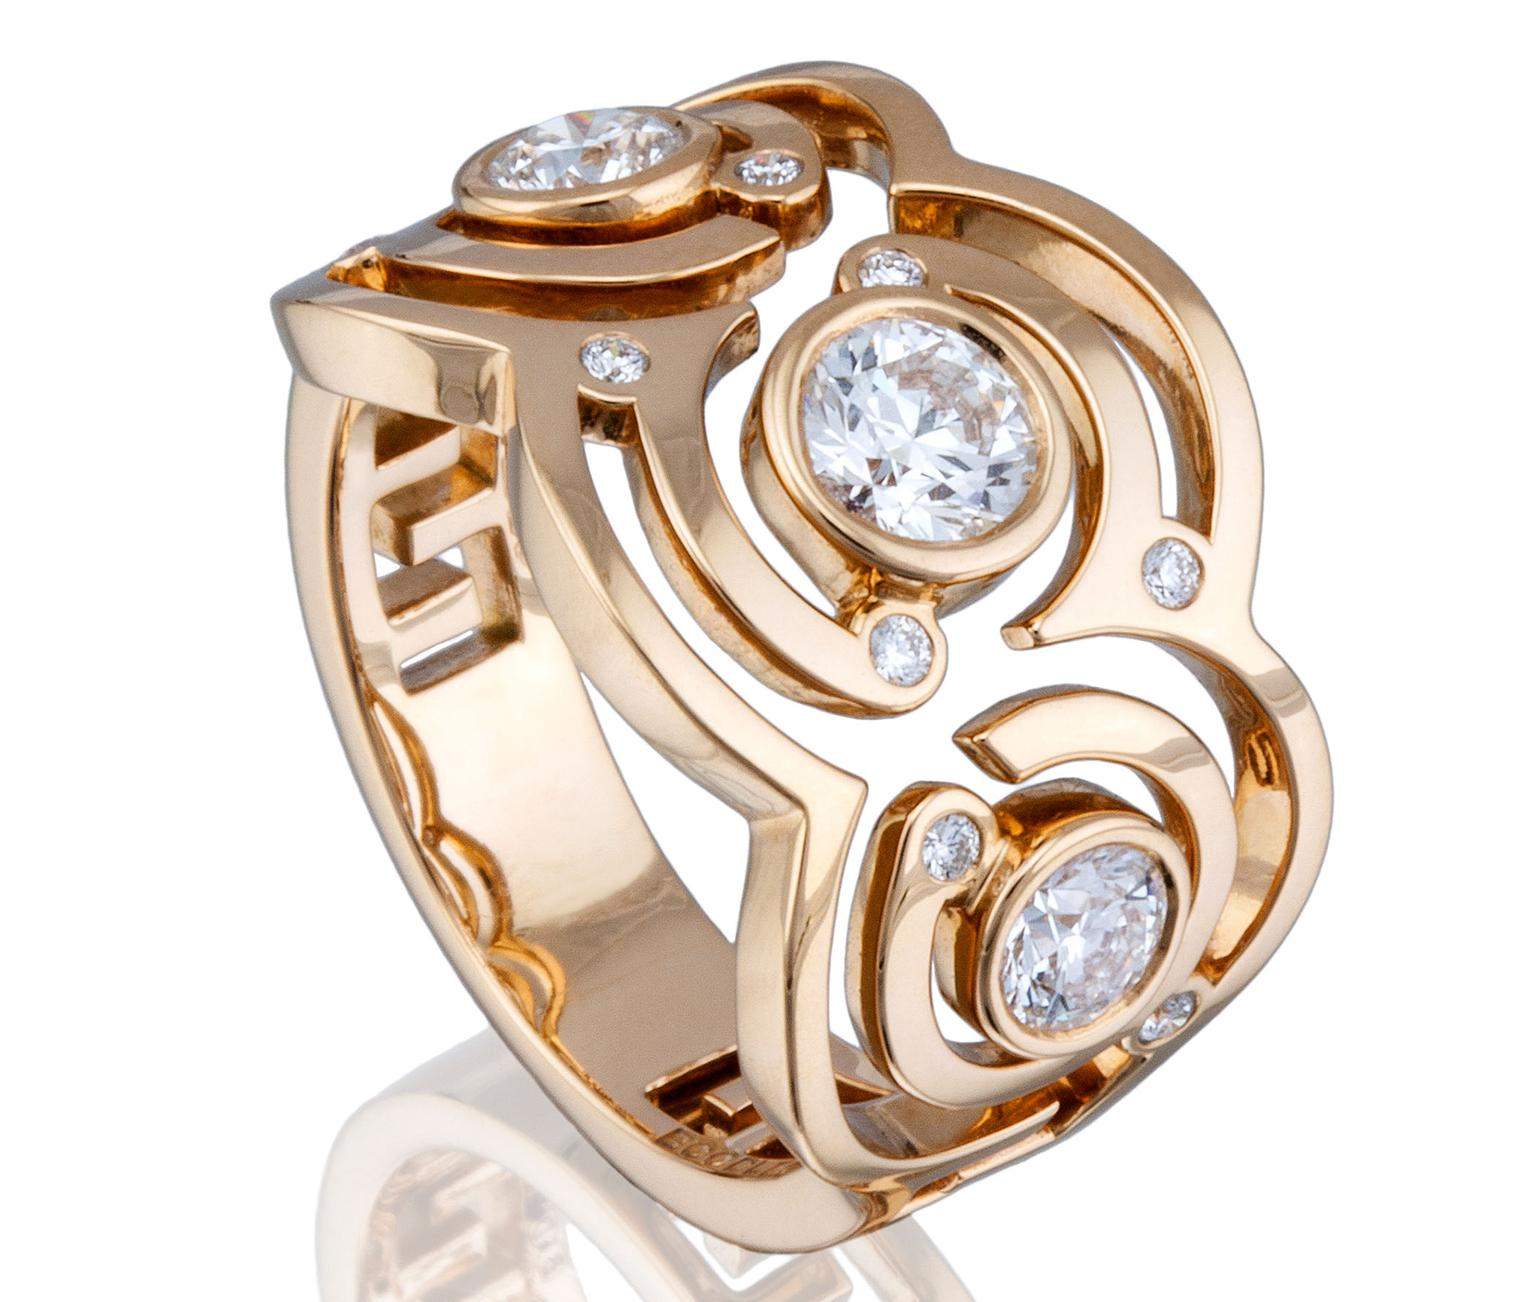 Boodles-Maze-RG-Ring-Zoom